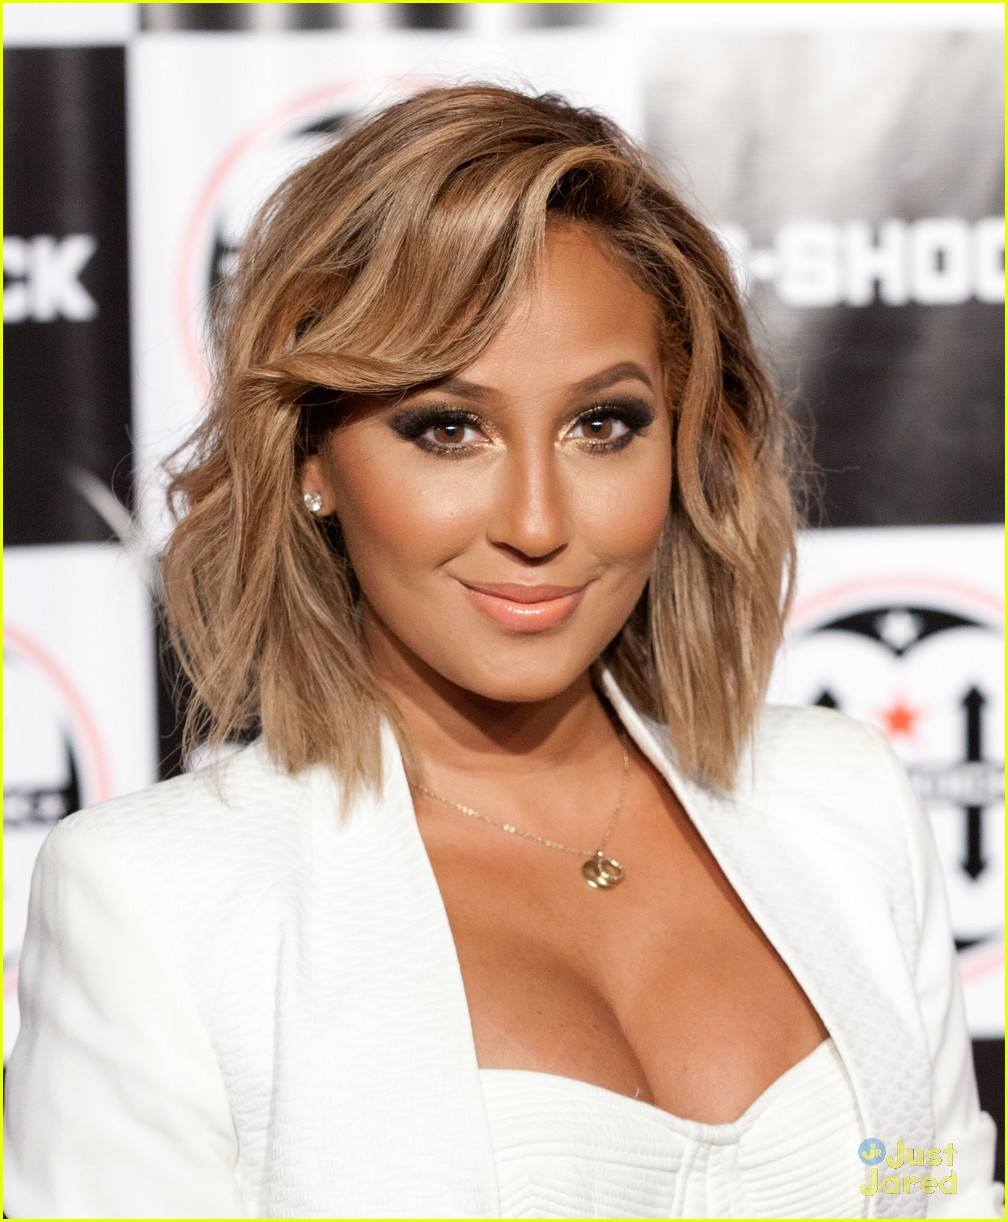 Leaked Adrienne Bailon nudes (98 photo), Tits, Leaked, Feet, legs 2015